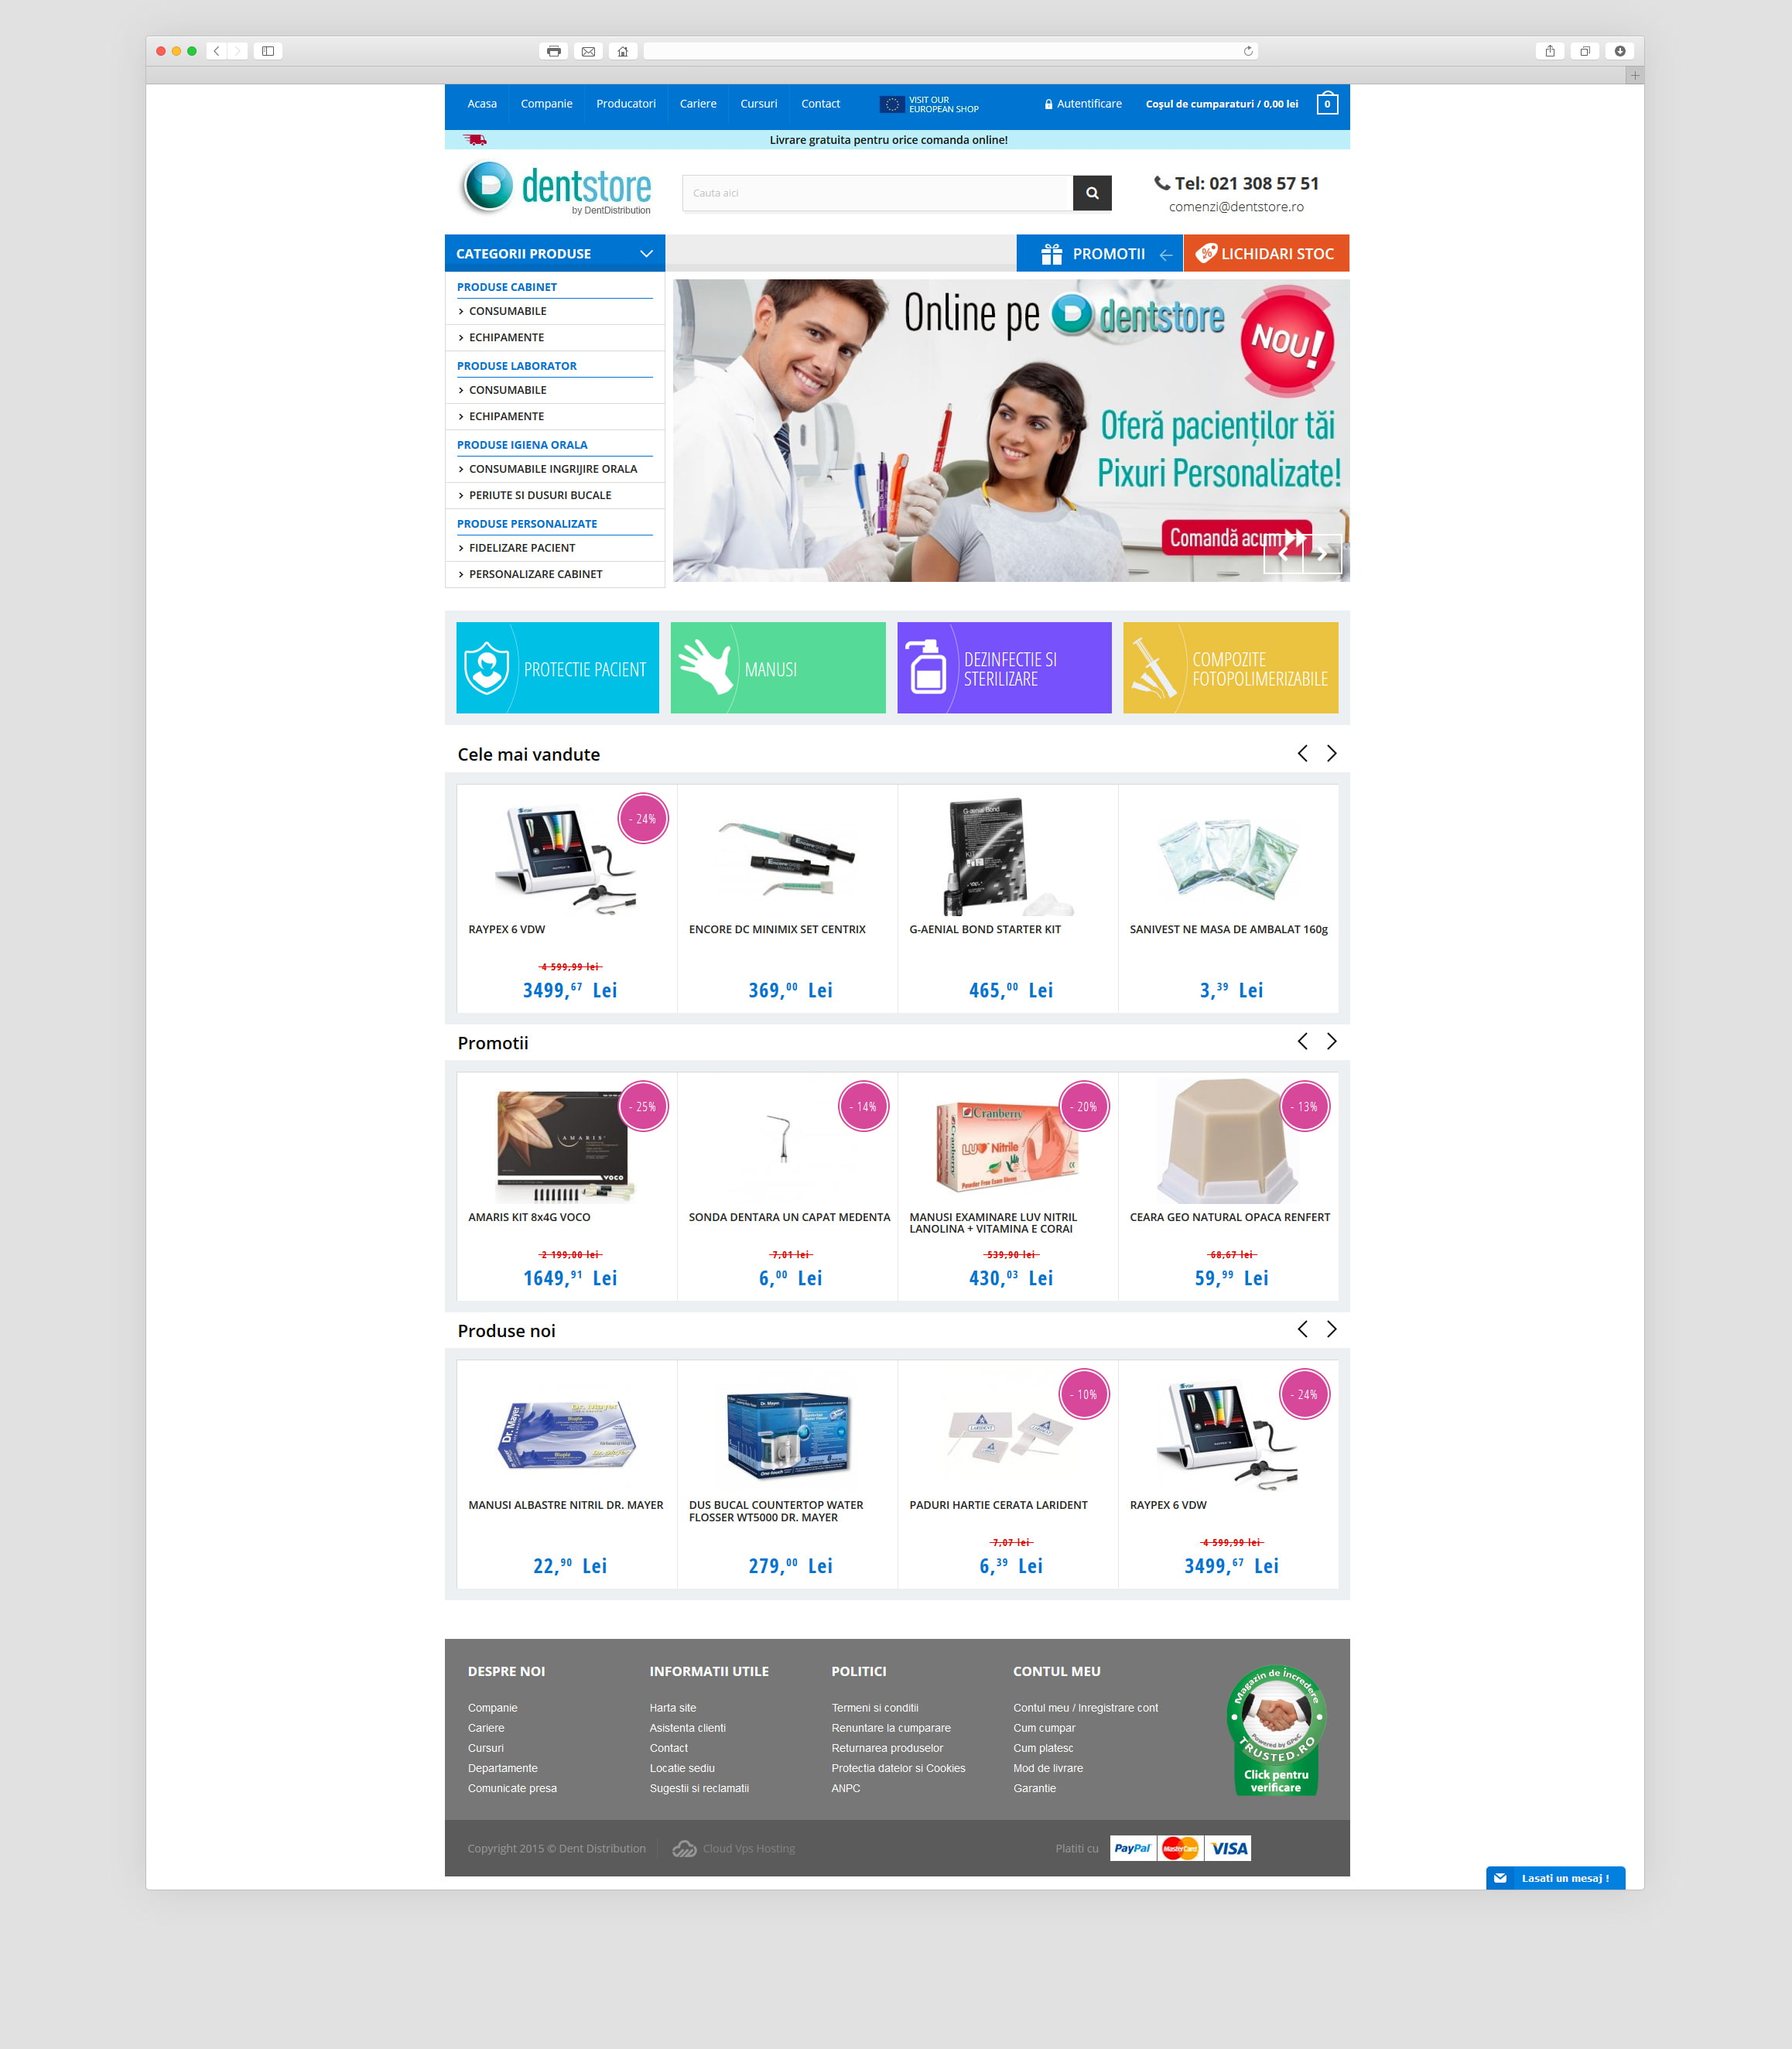 dentstore_web_1